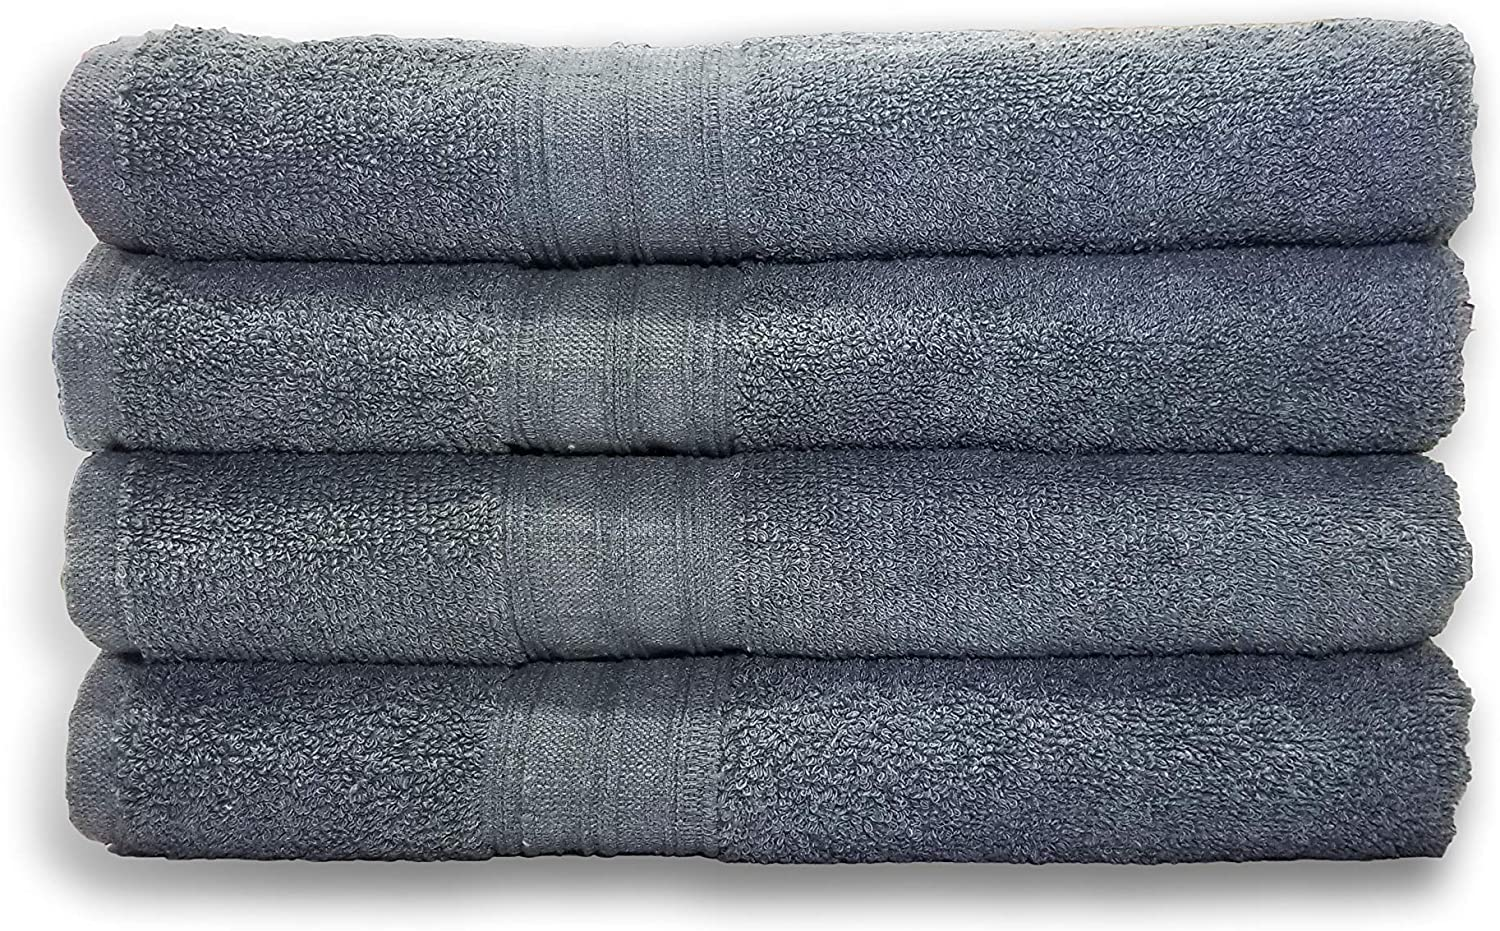 Springfield Linen Bath Towels - Cotton Bath Towels, Pack of 4 Premium Quality 100% Cotton, Size 27x54 Highly Absorbent and Multi- Purpose Bath Towel Set - Machine Washable Grey Bath Towels (Grey)